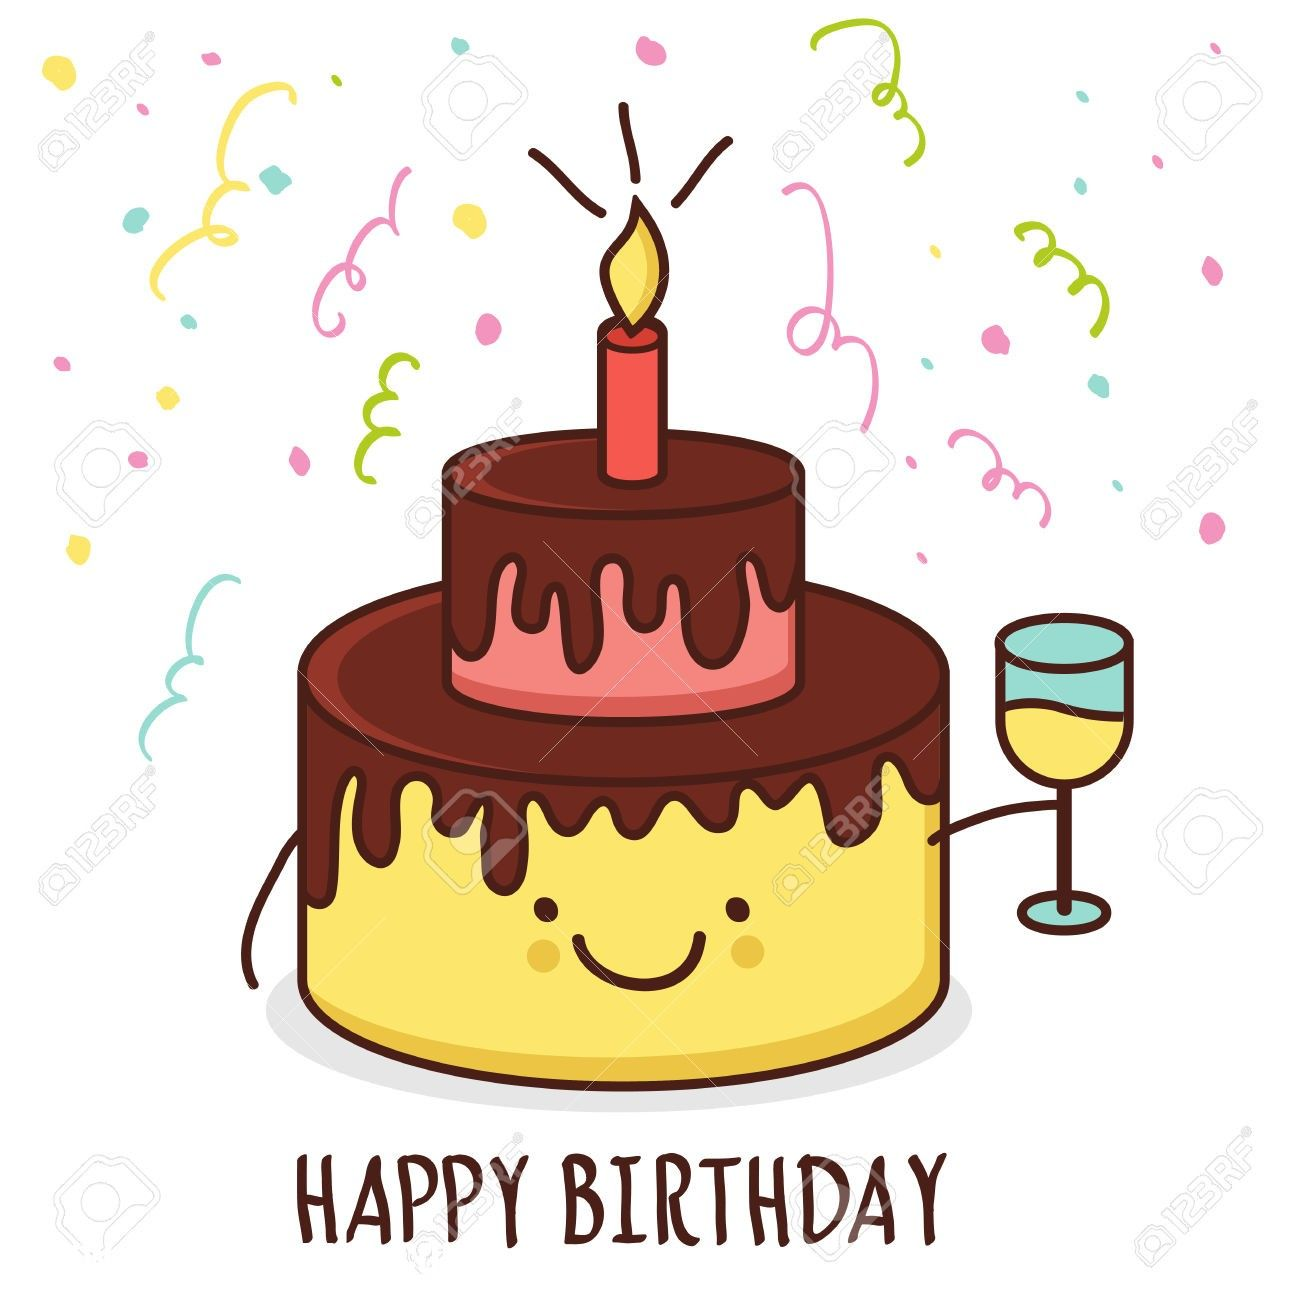 Cartoon Happy Birthday Cake Pics Auto Soletcshat Image Otomotif Cartoon Birthday Cake Happy Birthday Greeting Card Cool Birthday Cakes